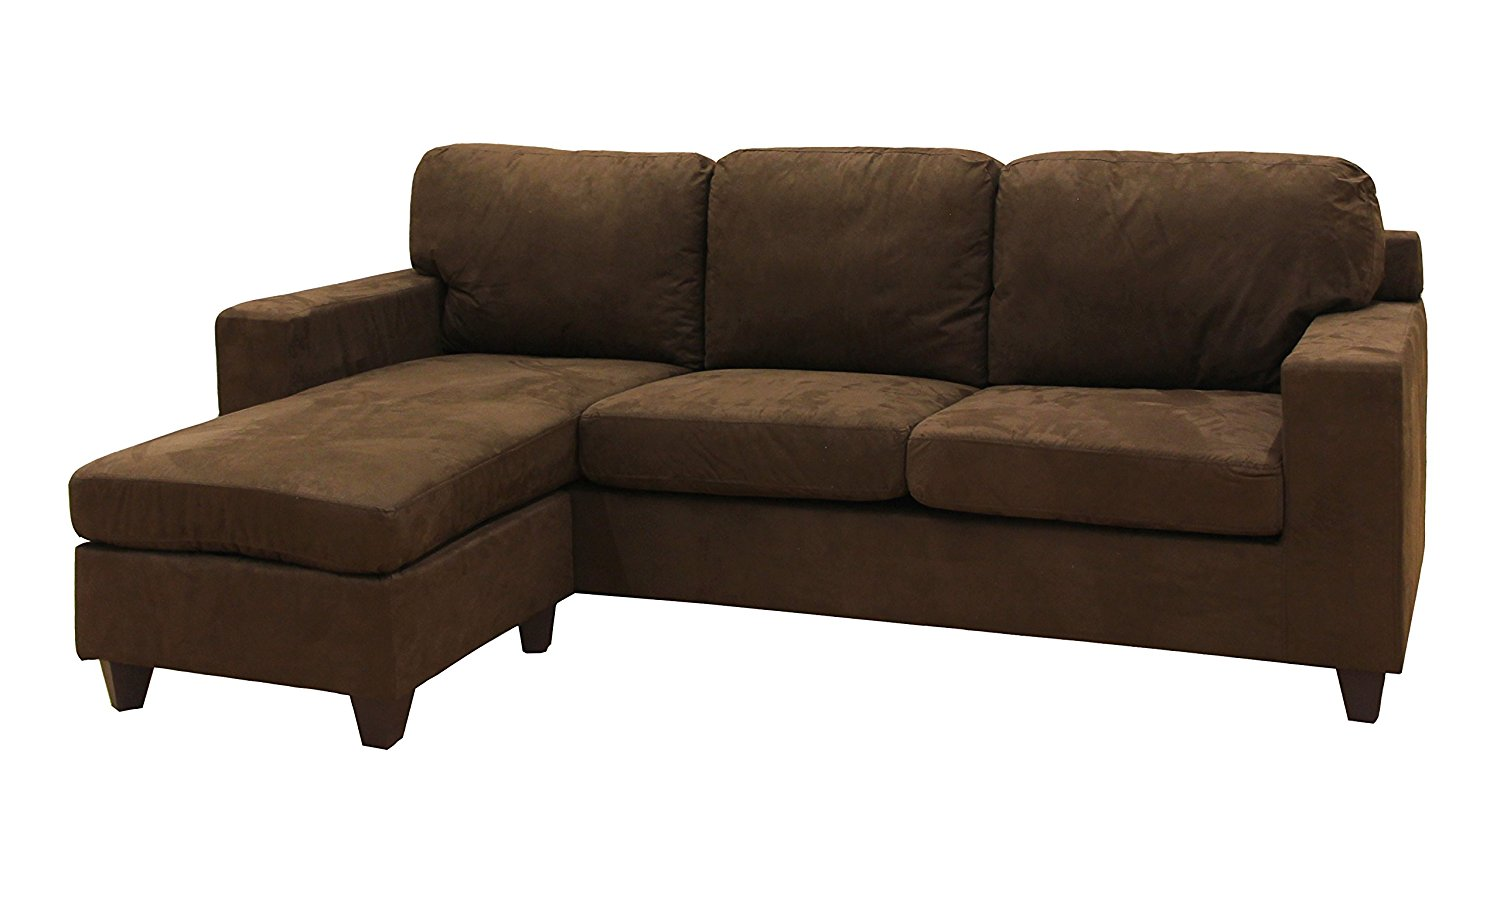 Awesome Cheap Microfiber Sectional Sleeper Sofa Find Microfiber Andrewgaddart Wooden Chair Designs For Living Room Andrewgaddartcom